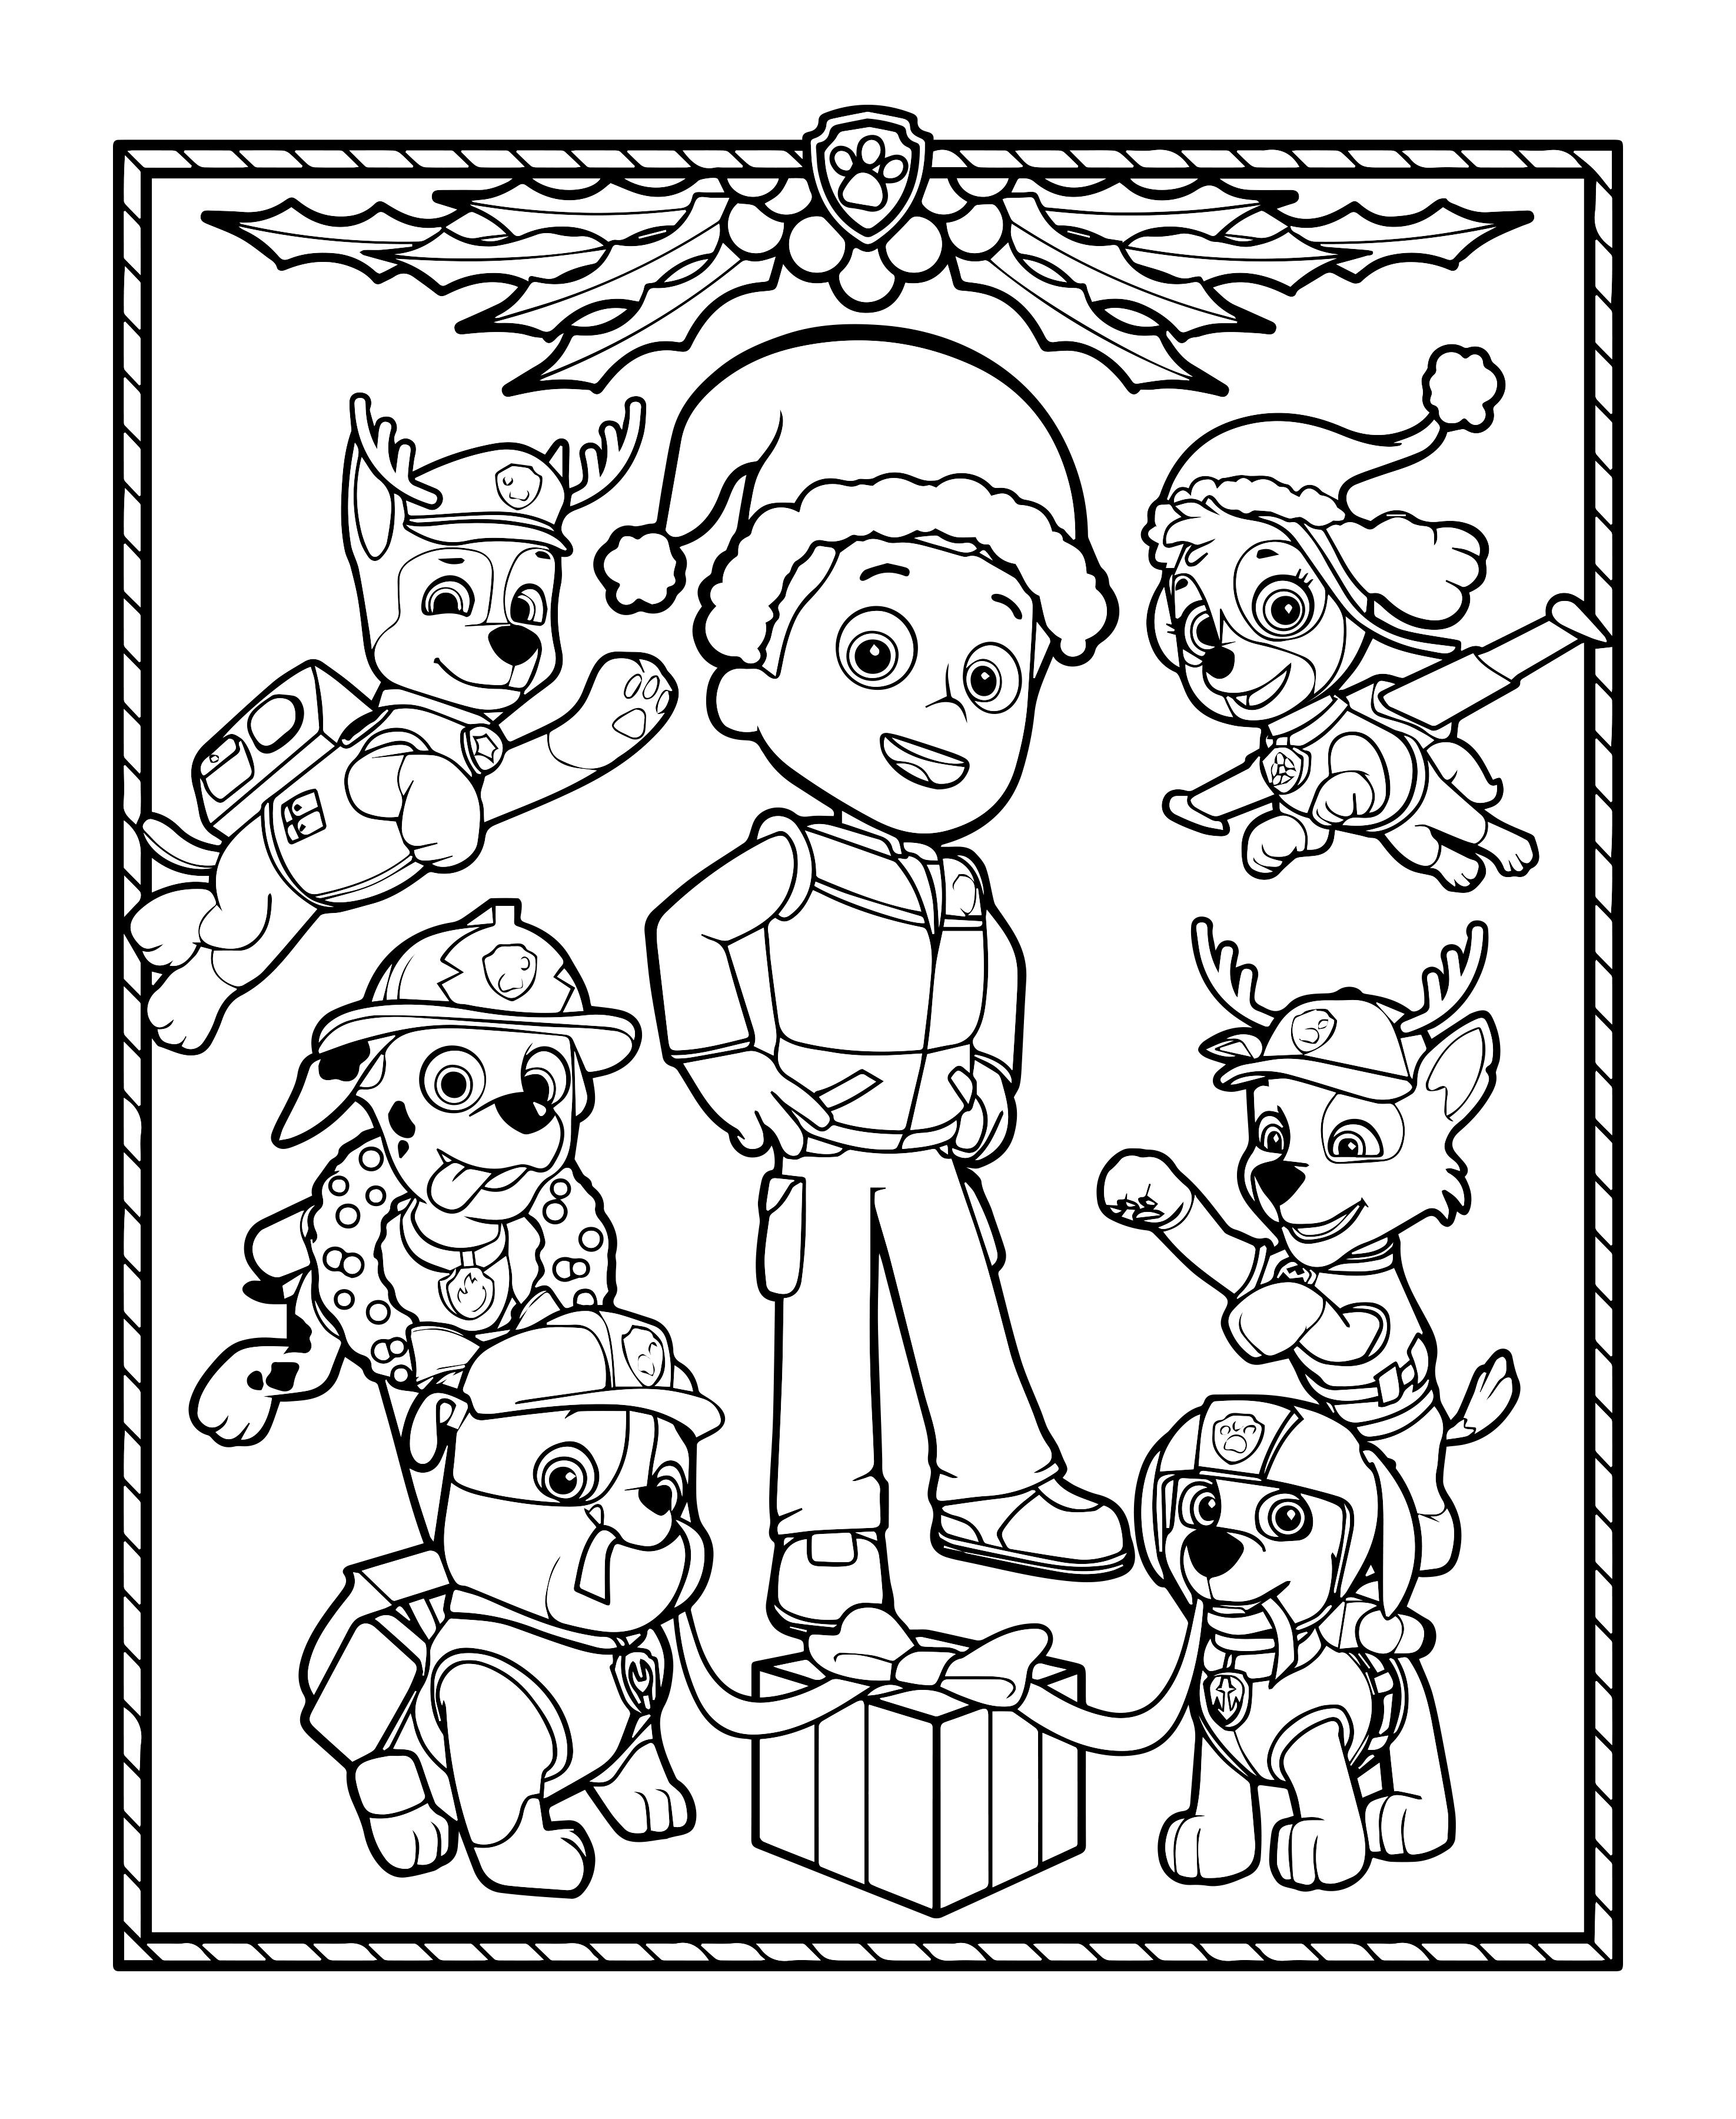 Pups From Paw Patrol Coloring Page Paginas Para Colorir Da